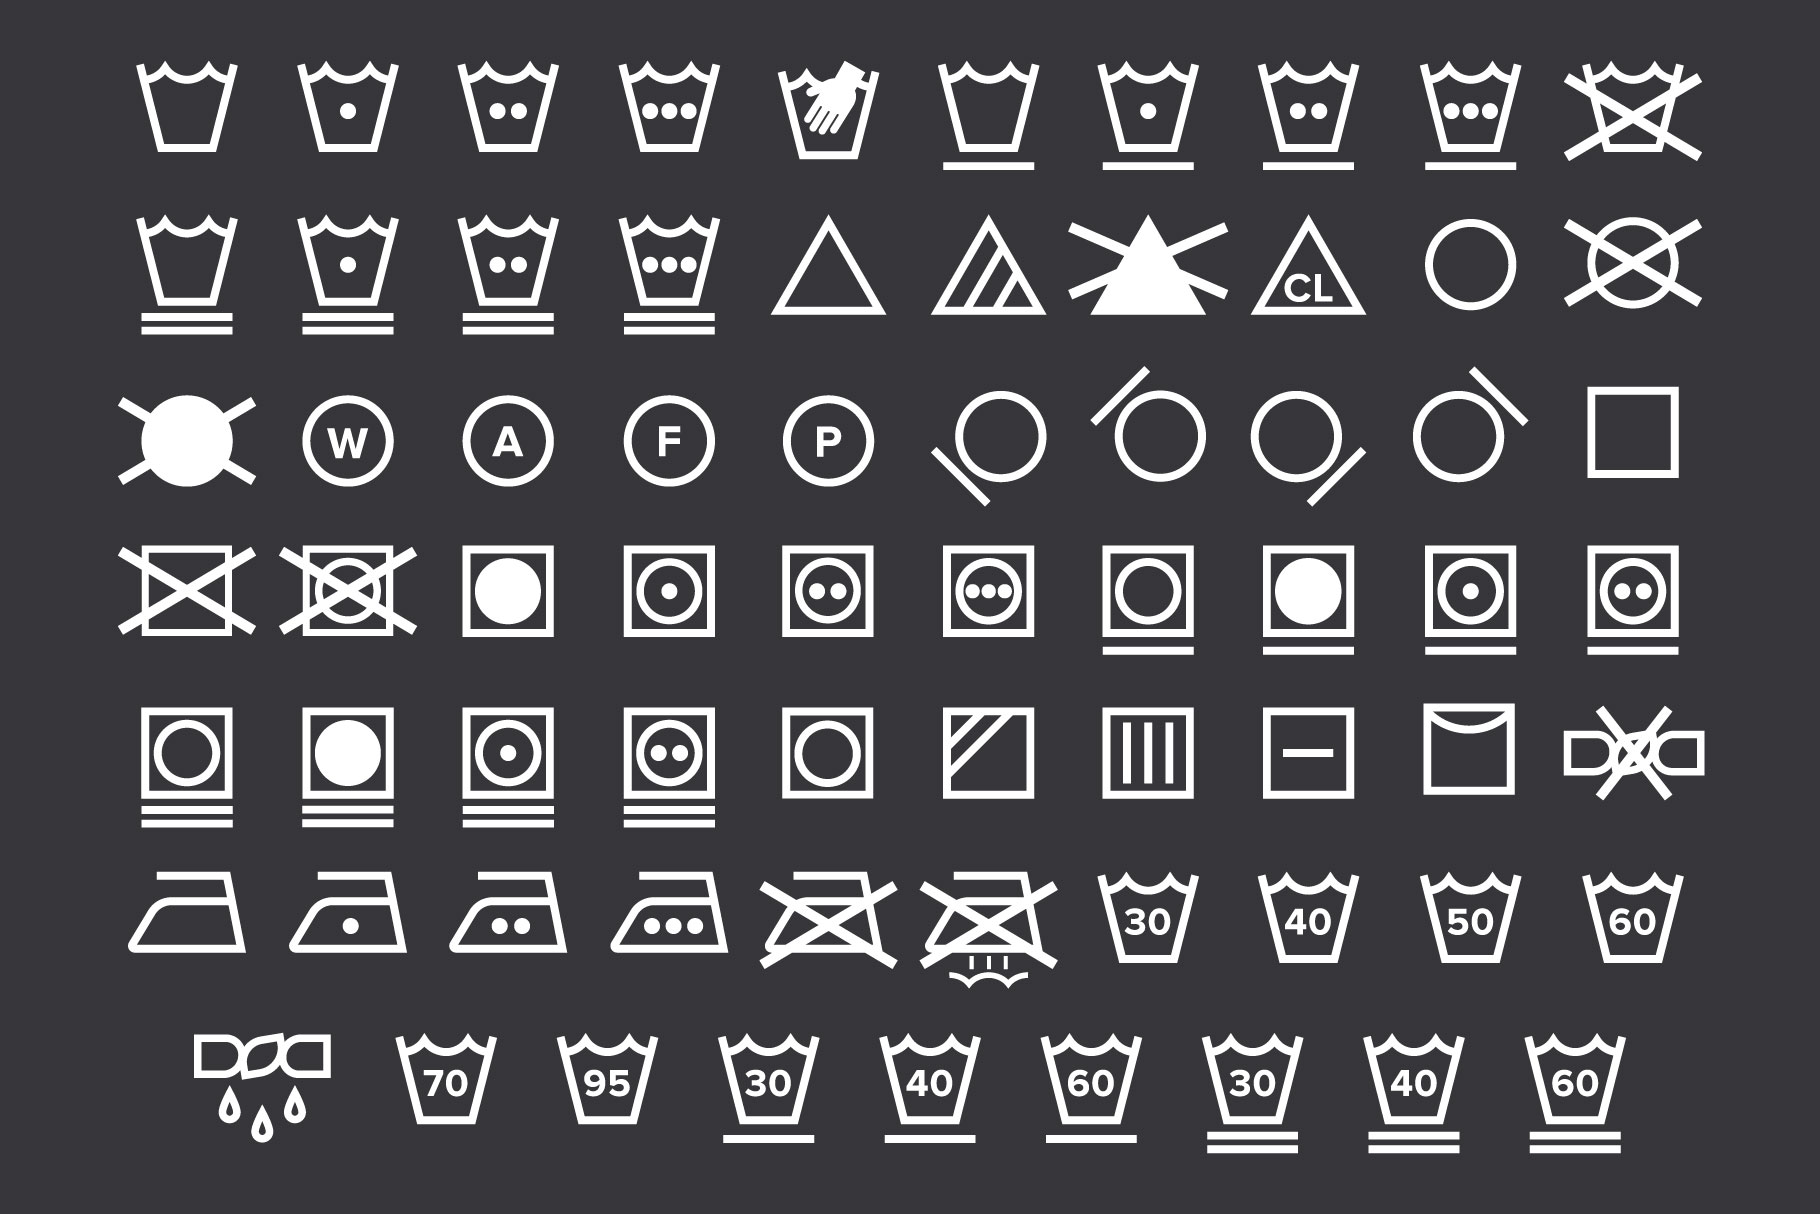 Laundry Care Symbol Icons Set example image 3